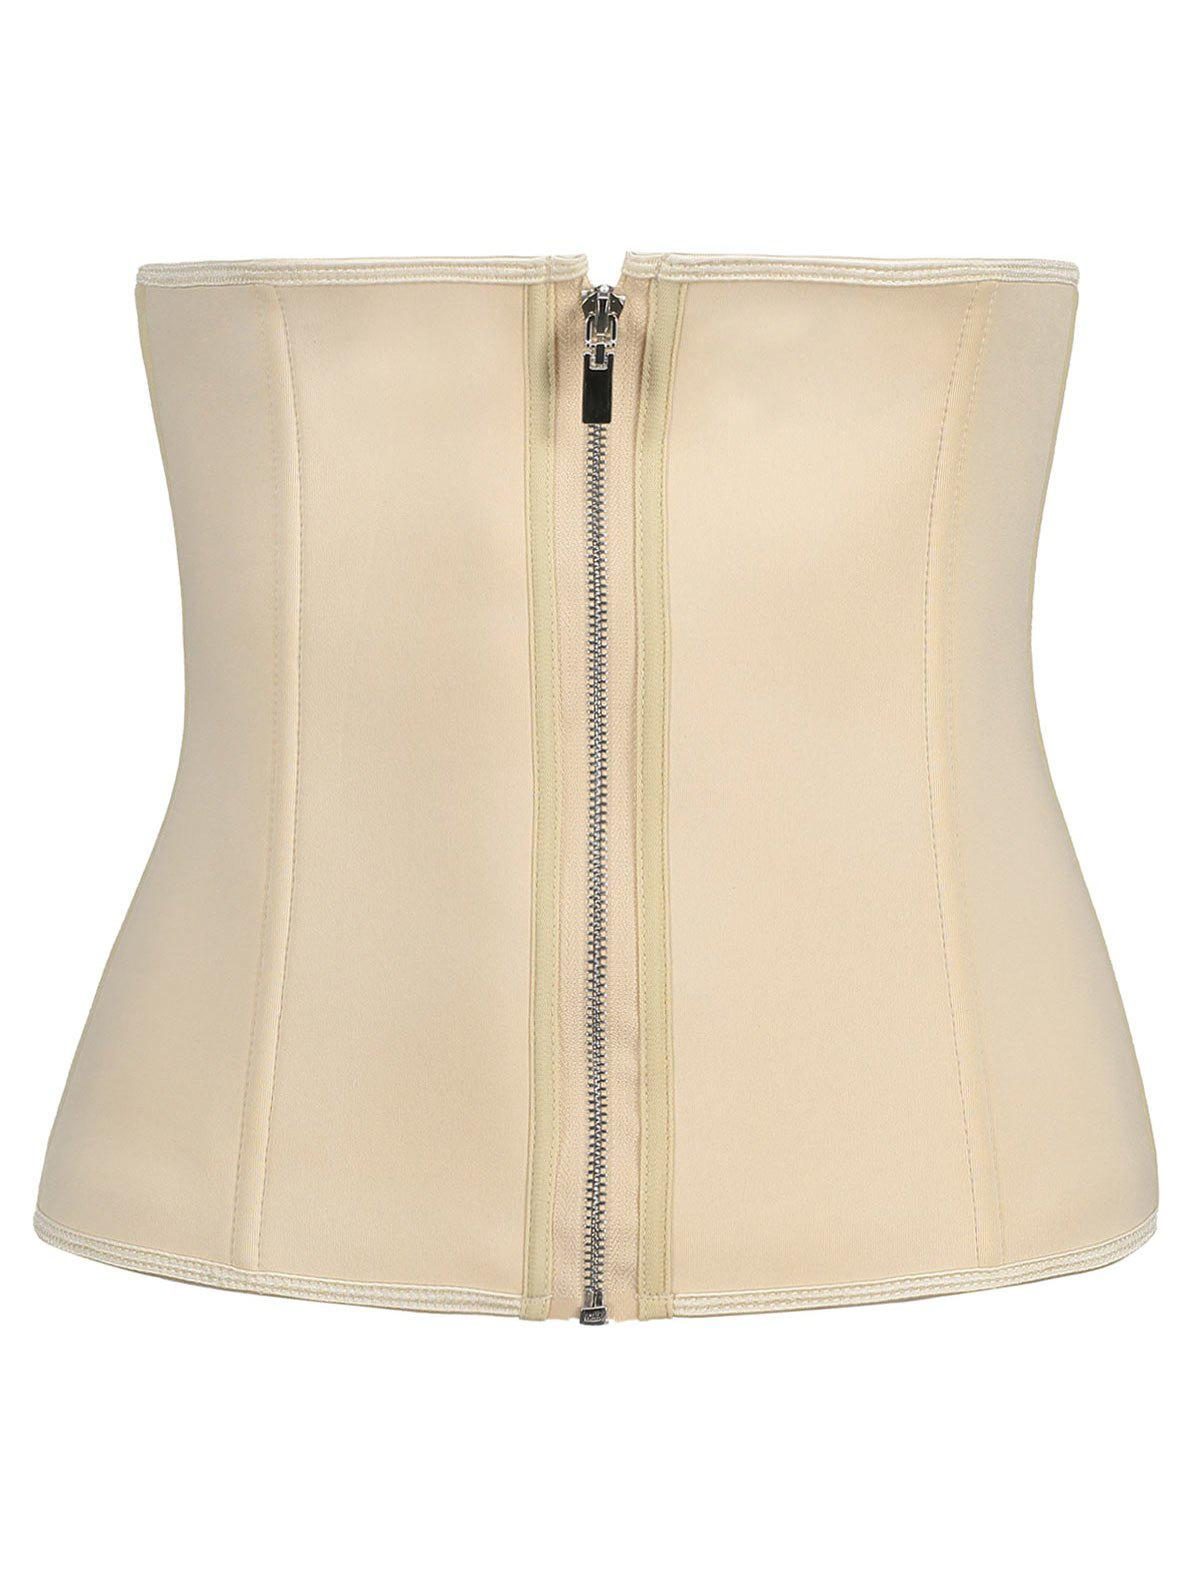 Waist Trainer Plus Size Zip Up CorsetWOMEN<br><br>Size: 5XL; Color: COMPLEXION; Material: Nylon; Pattern Type: Solid; Embellishment: Zippers; Weight: 0.4100kg; Package Contents: 1 x Corset;